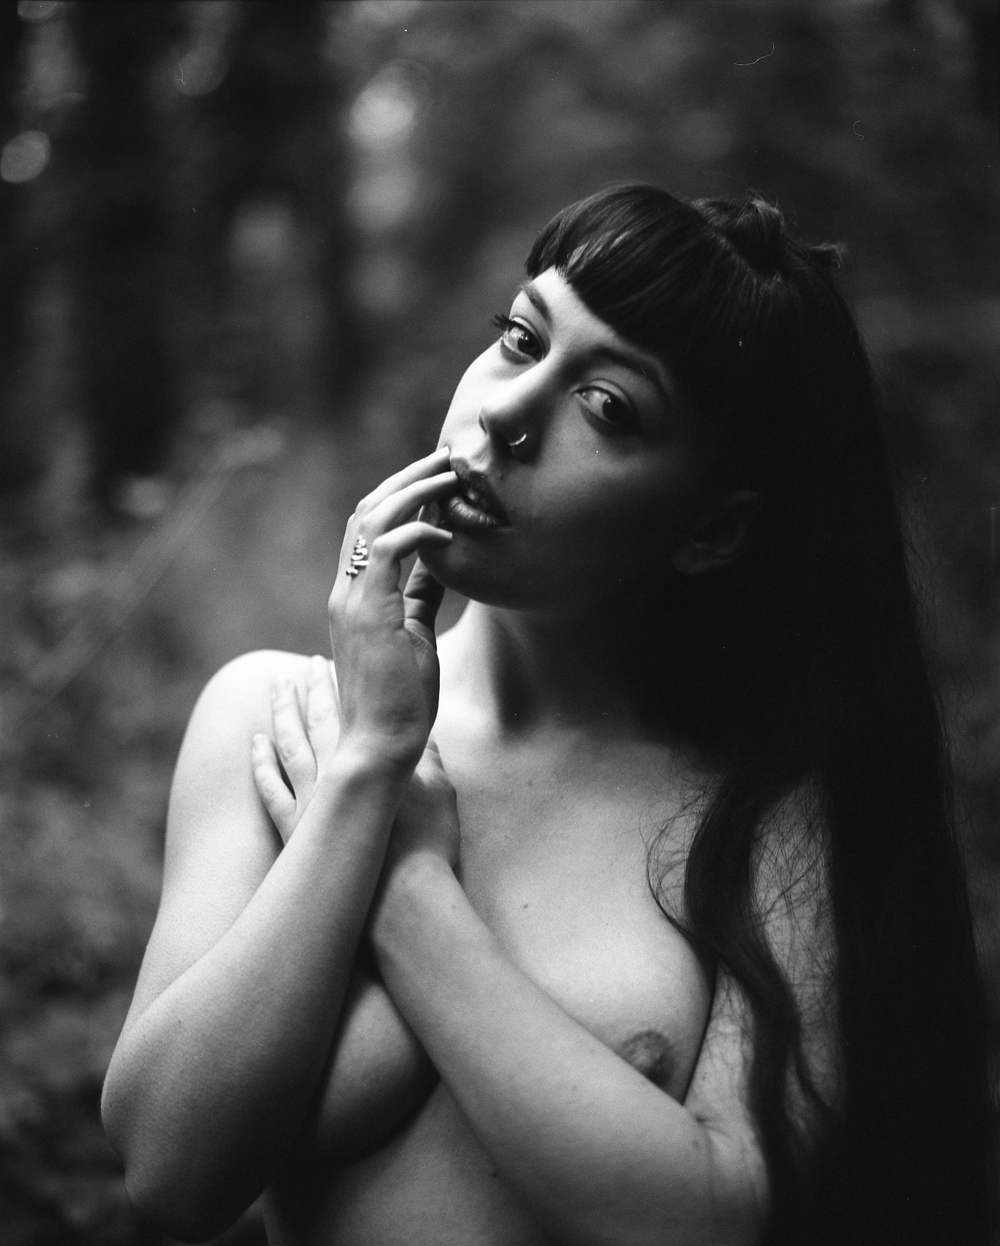 Gestalta photographed by Selina Mayer. Monochrome artistic nude image shot in the forest